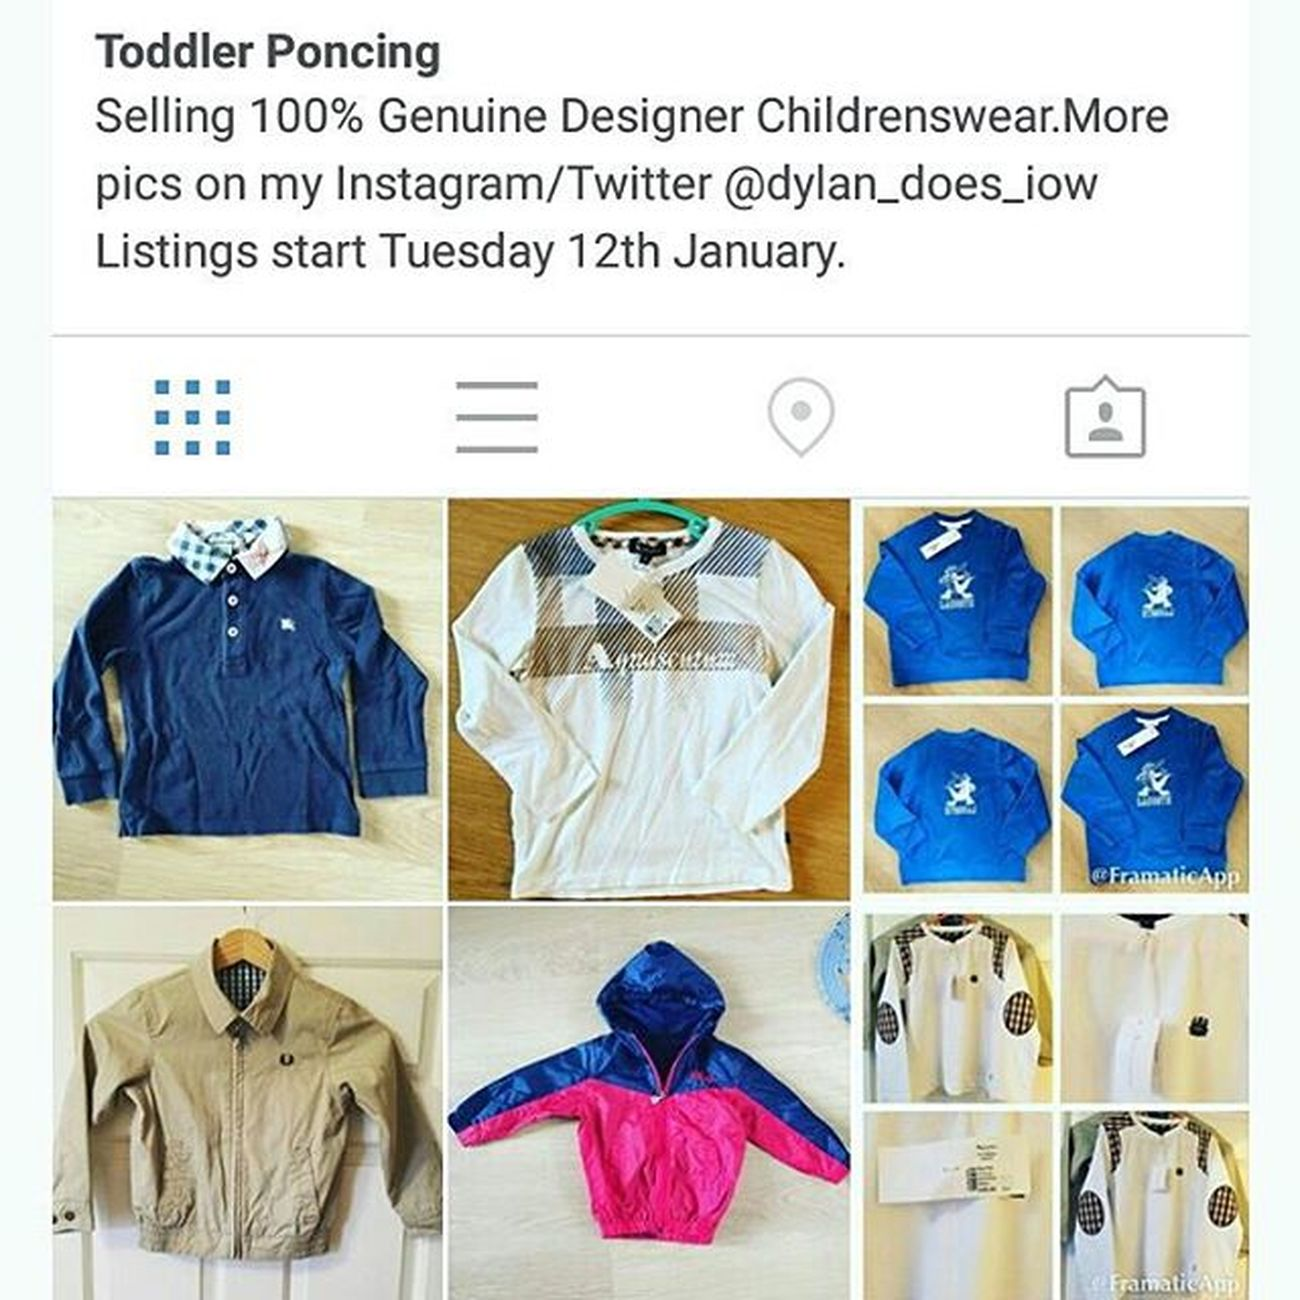 If you are looking for some casual Kids clobber check out @toddlerponcing for some stunning brands like CPCompany Aquascutum some New and some have plenty of life left in it to give it a second change